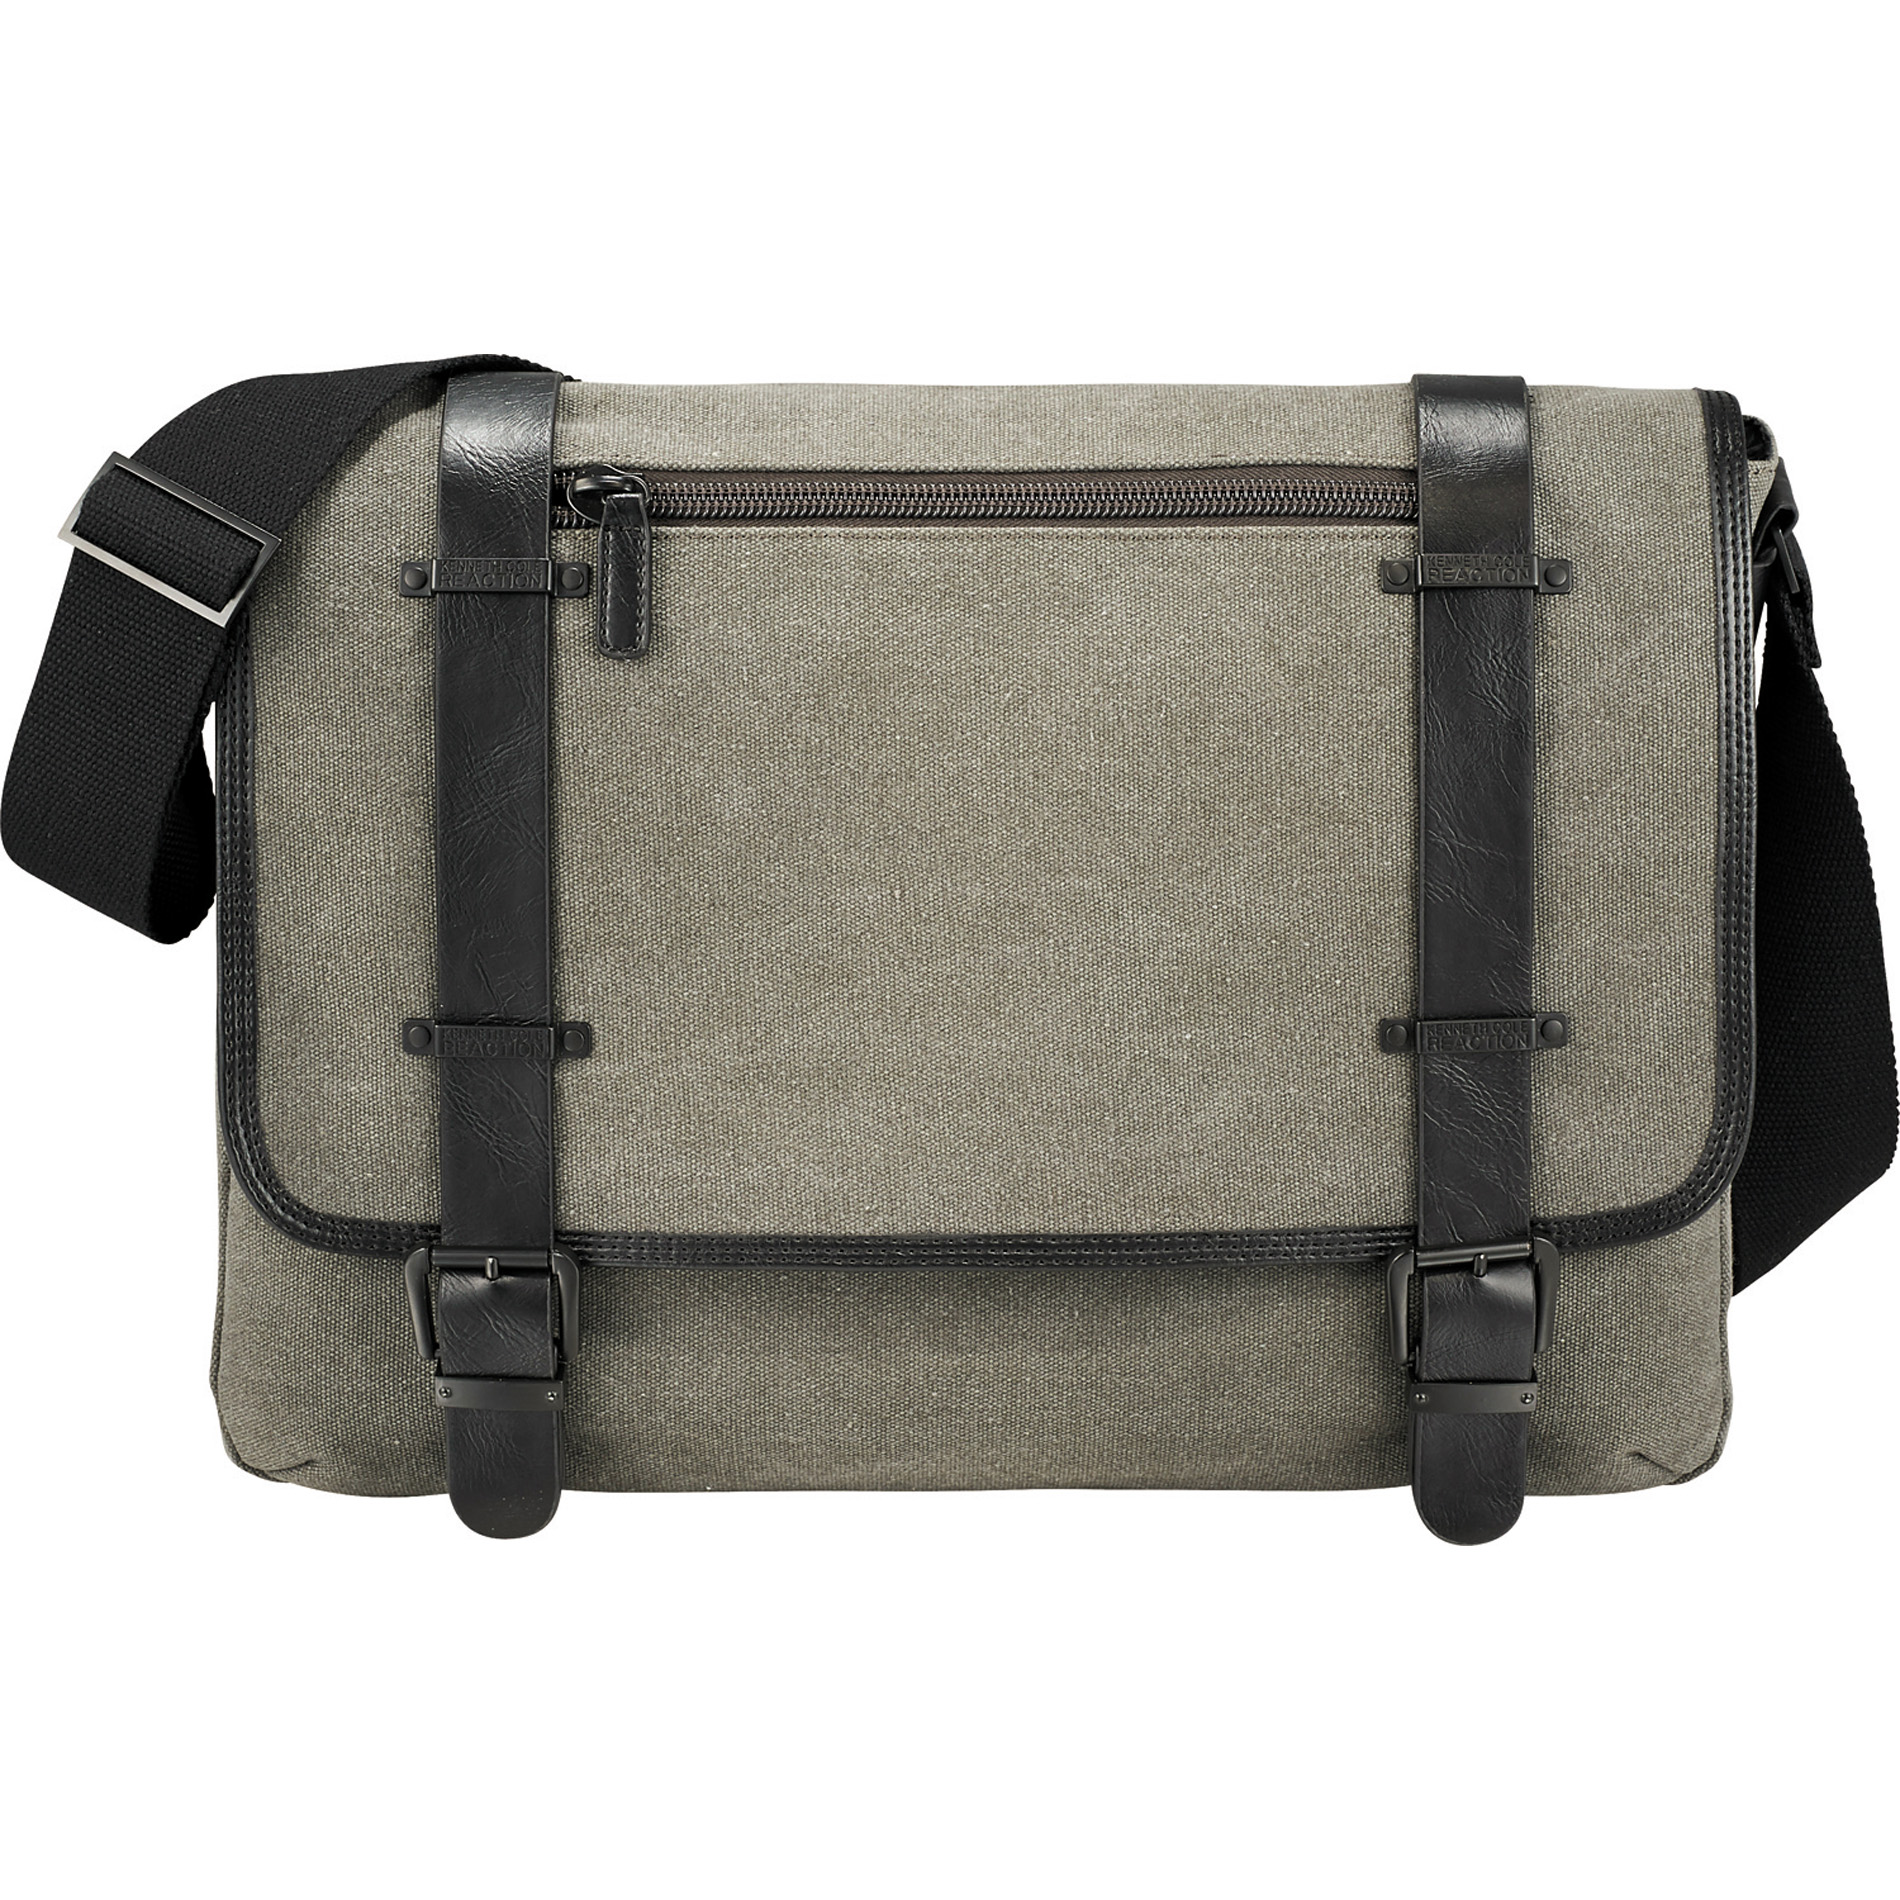 Kenneth Cole 9950-61 - Canvas 17 Computer Messenger